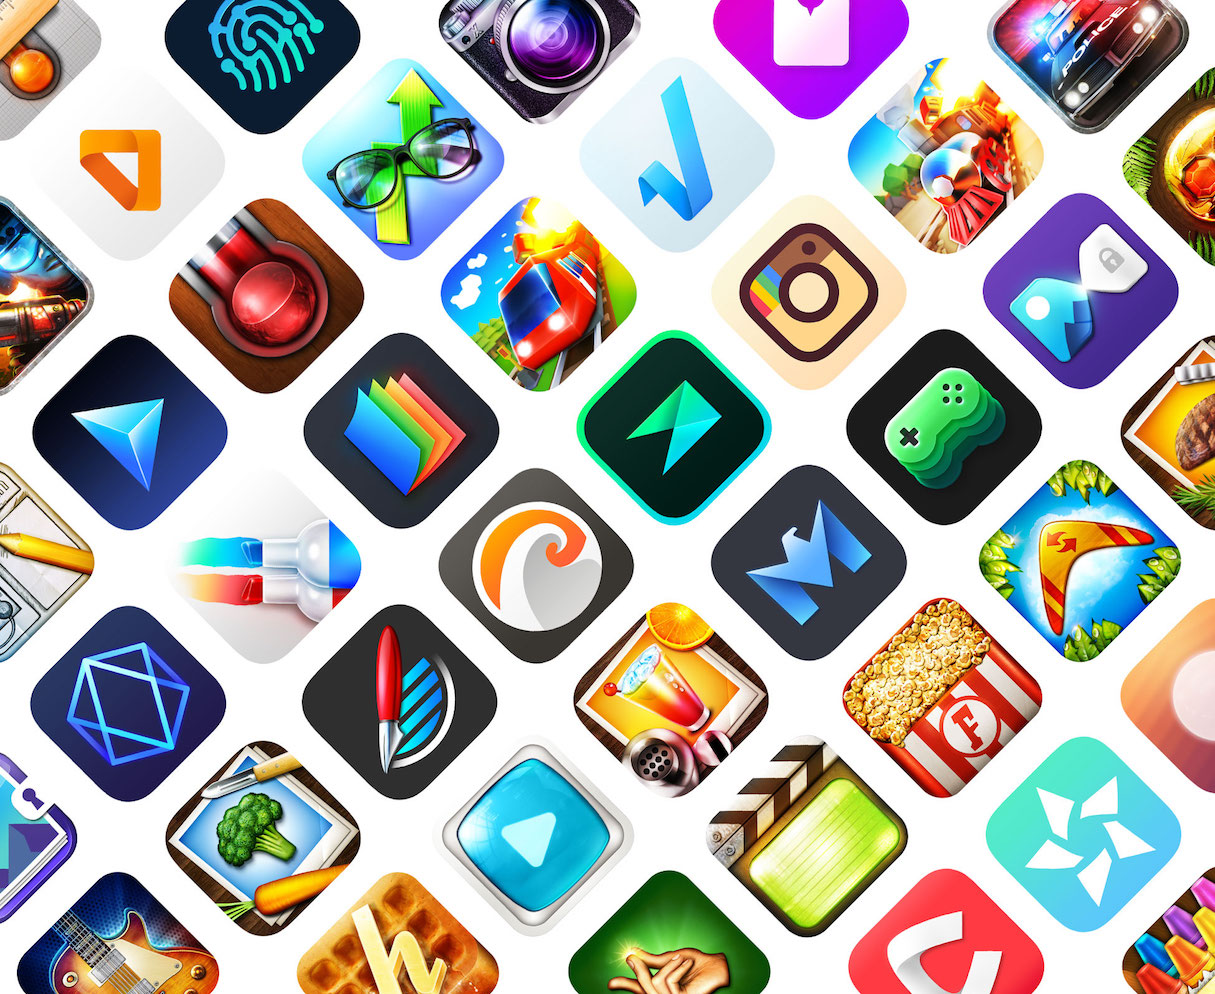 How to market an app design icon